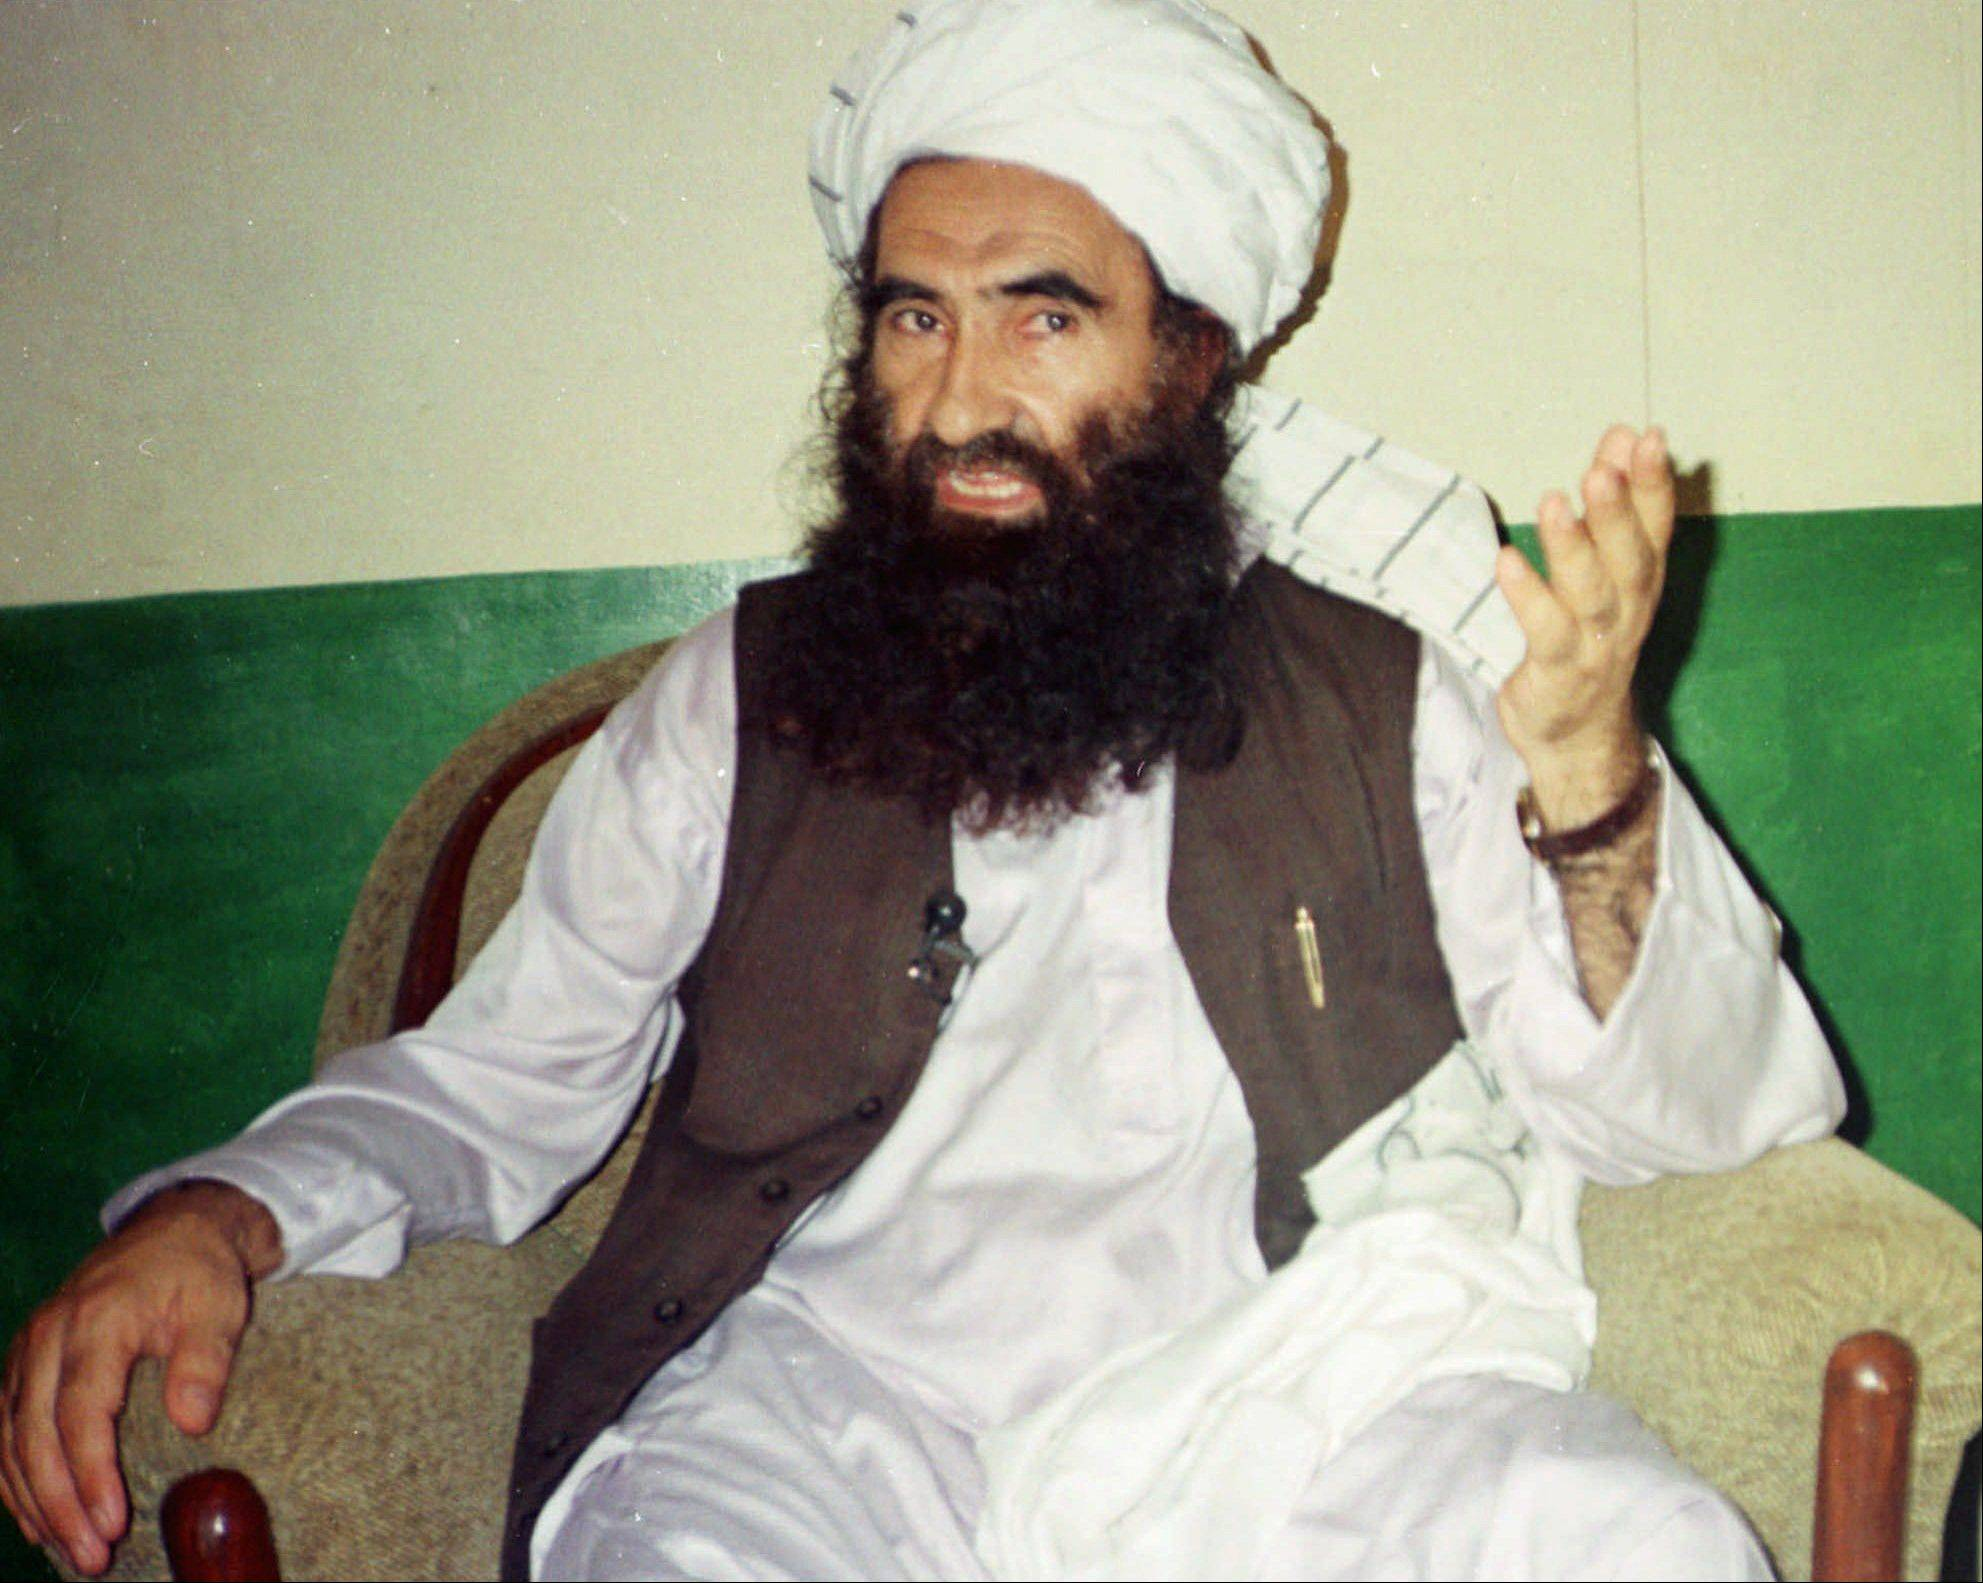 In this 1998 photo, Jalaluddin Haqqani, founder of the militant group the Haqqani network, speaks during an interview in Miram Shah, Pakistan. The Obama administration has formally designated the Pakistan-based Haqqani network as a foreign terrorist organization, U.S. officials said Friday, in a complicated political decision as the U.S. withdraws from Afghanistan and pushes for a reconciliation pact to end more than a decade of warfare.